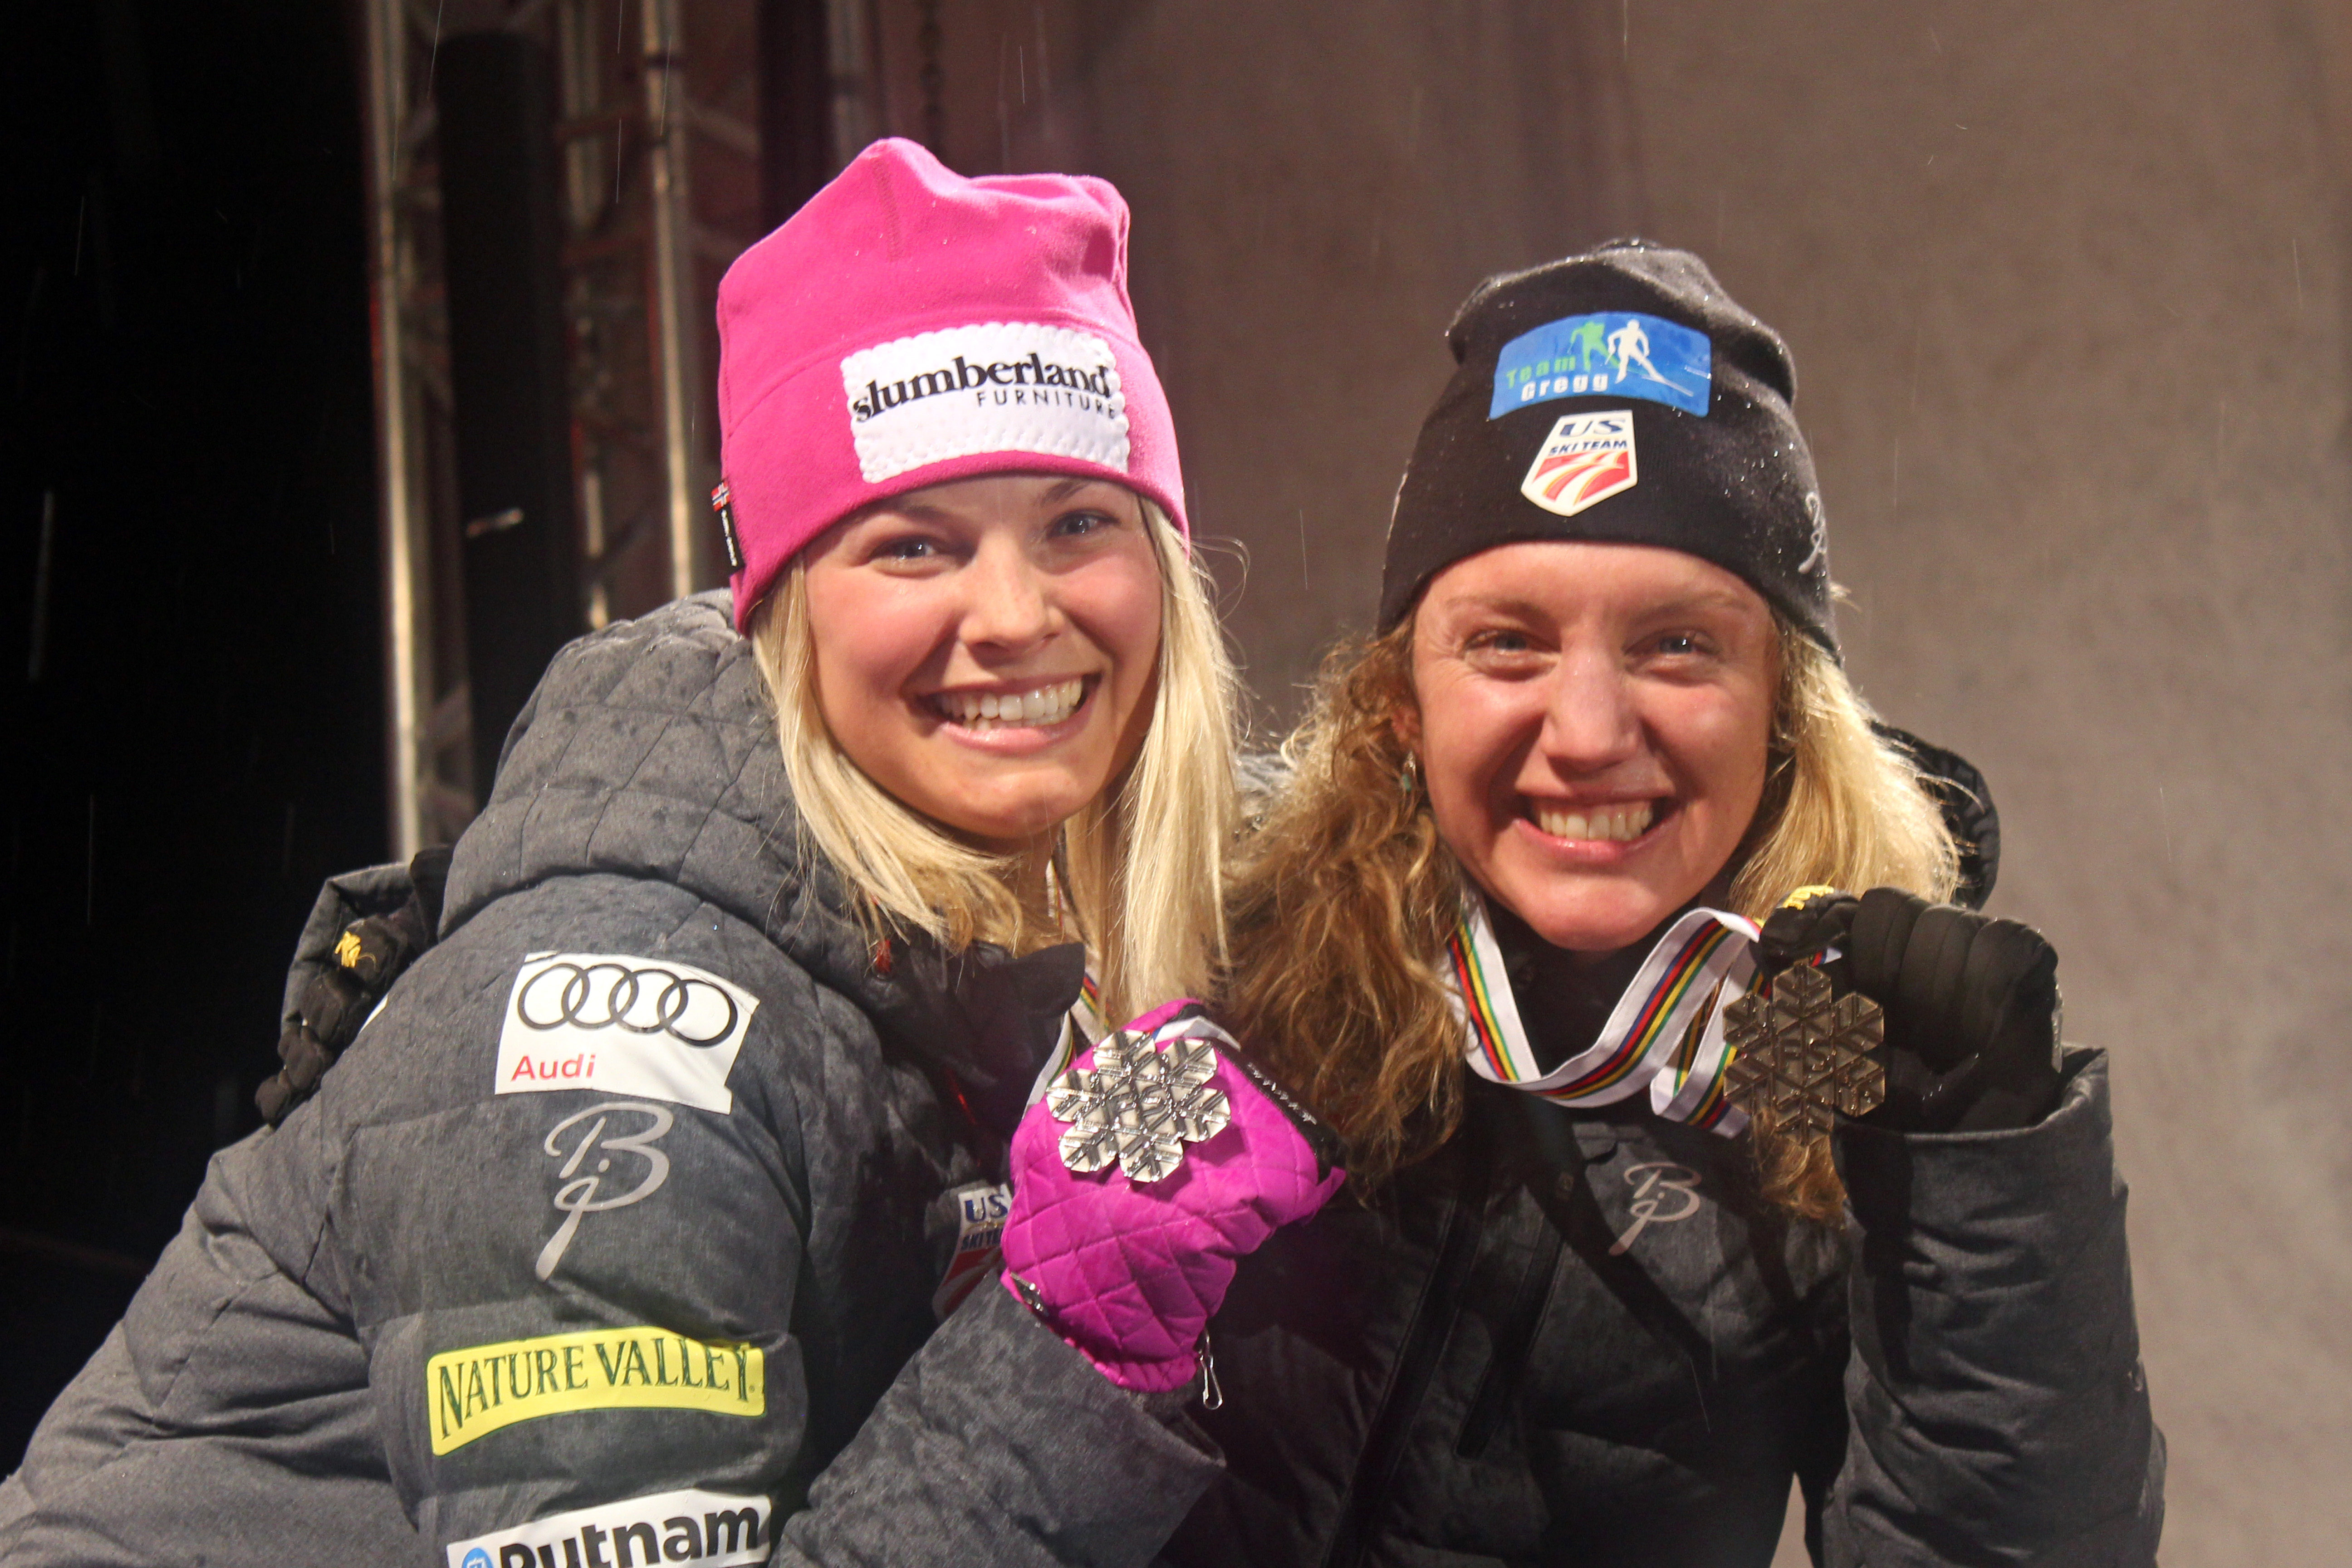 https://fasterskier.com/wp-content/blogs.dir/1/files/2015/02/Jessie_and_Calitlin_Podium.jpg